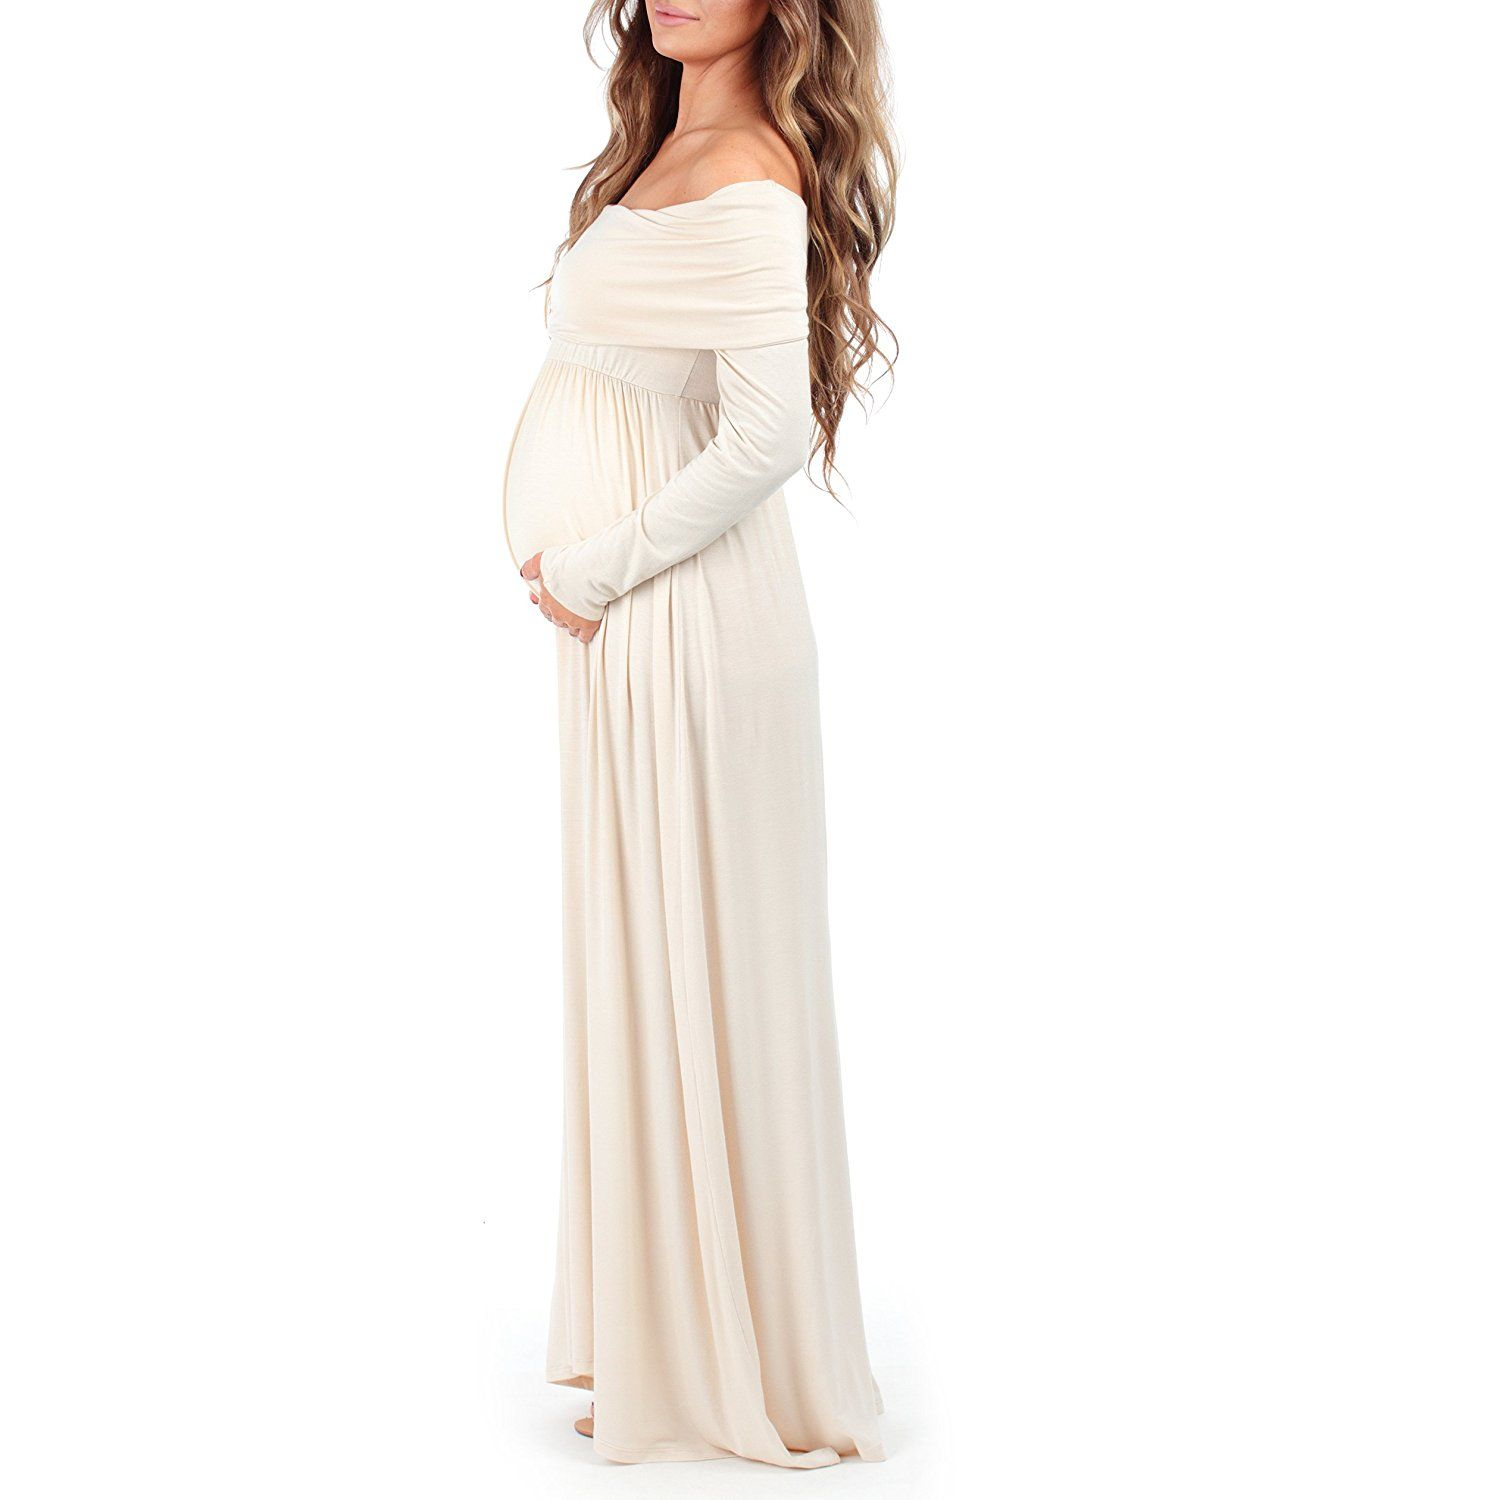 7e17cd308dd57 Women Mother Bee Womens Cowl Neck and Over The Shoulder Ruched Maternity  and Nursing Dress by